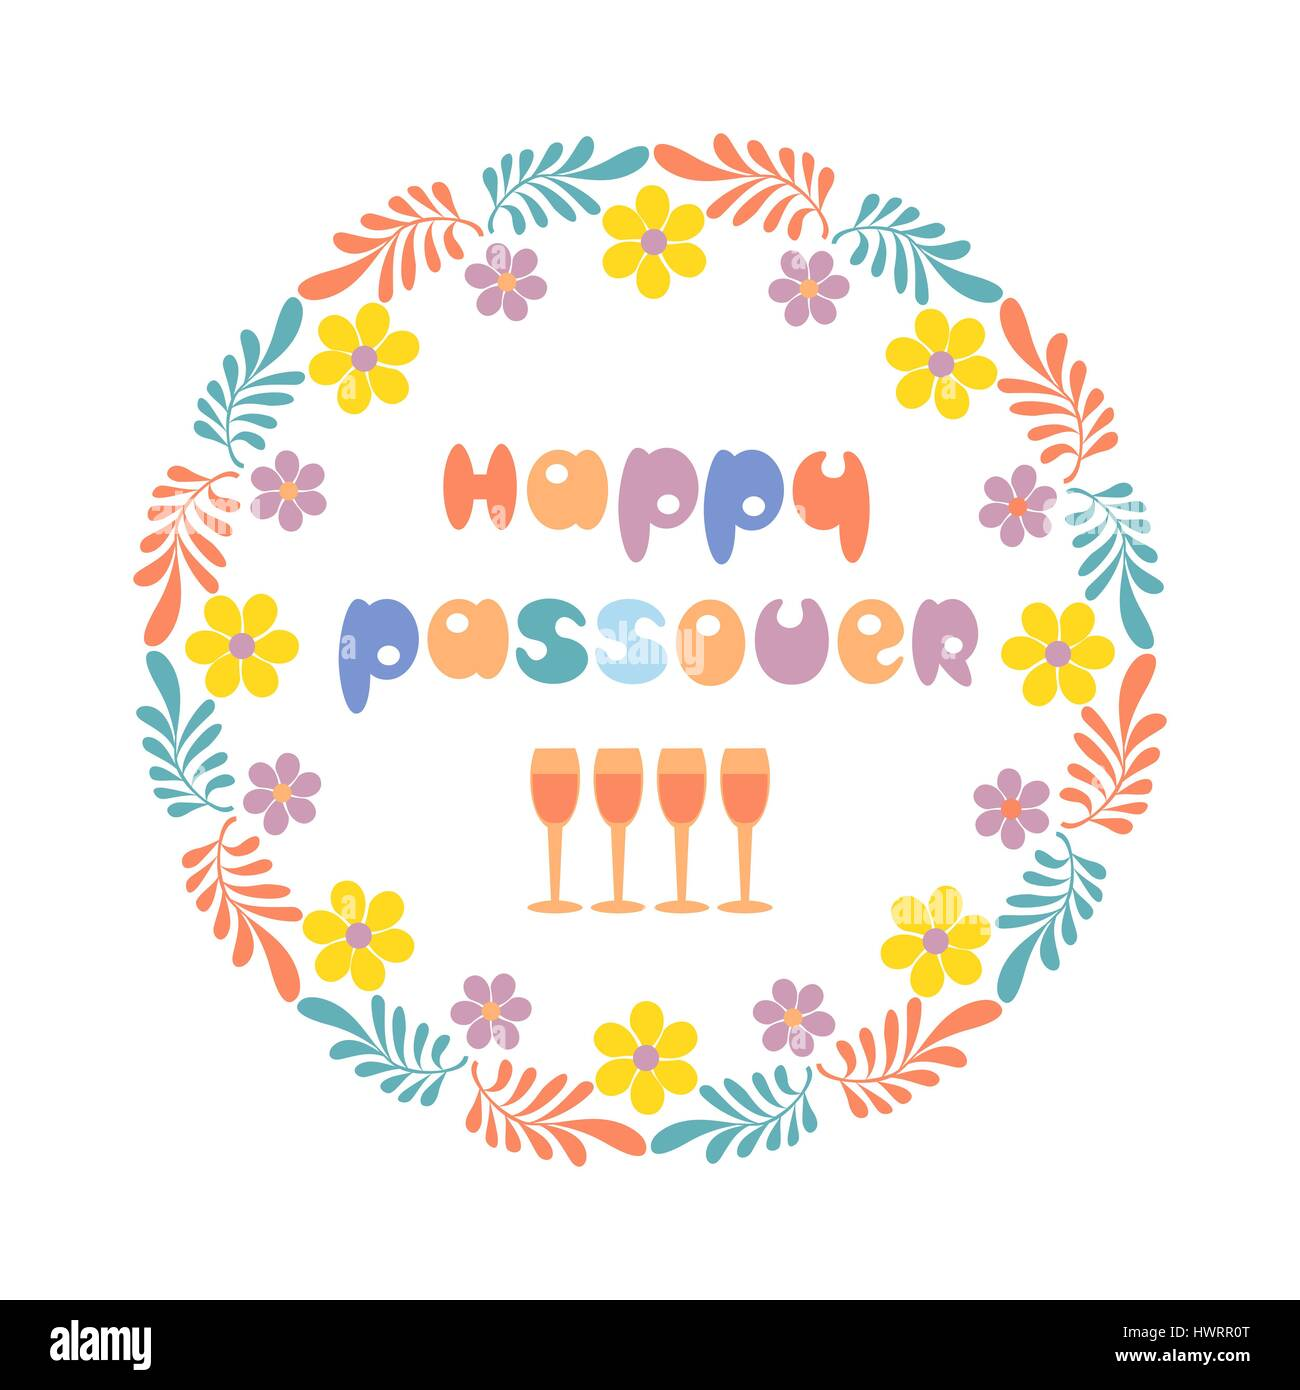 Happy Passover card. - Stock Image